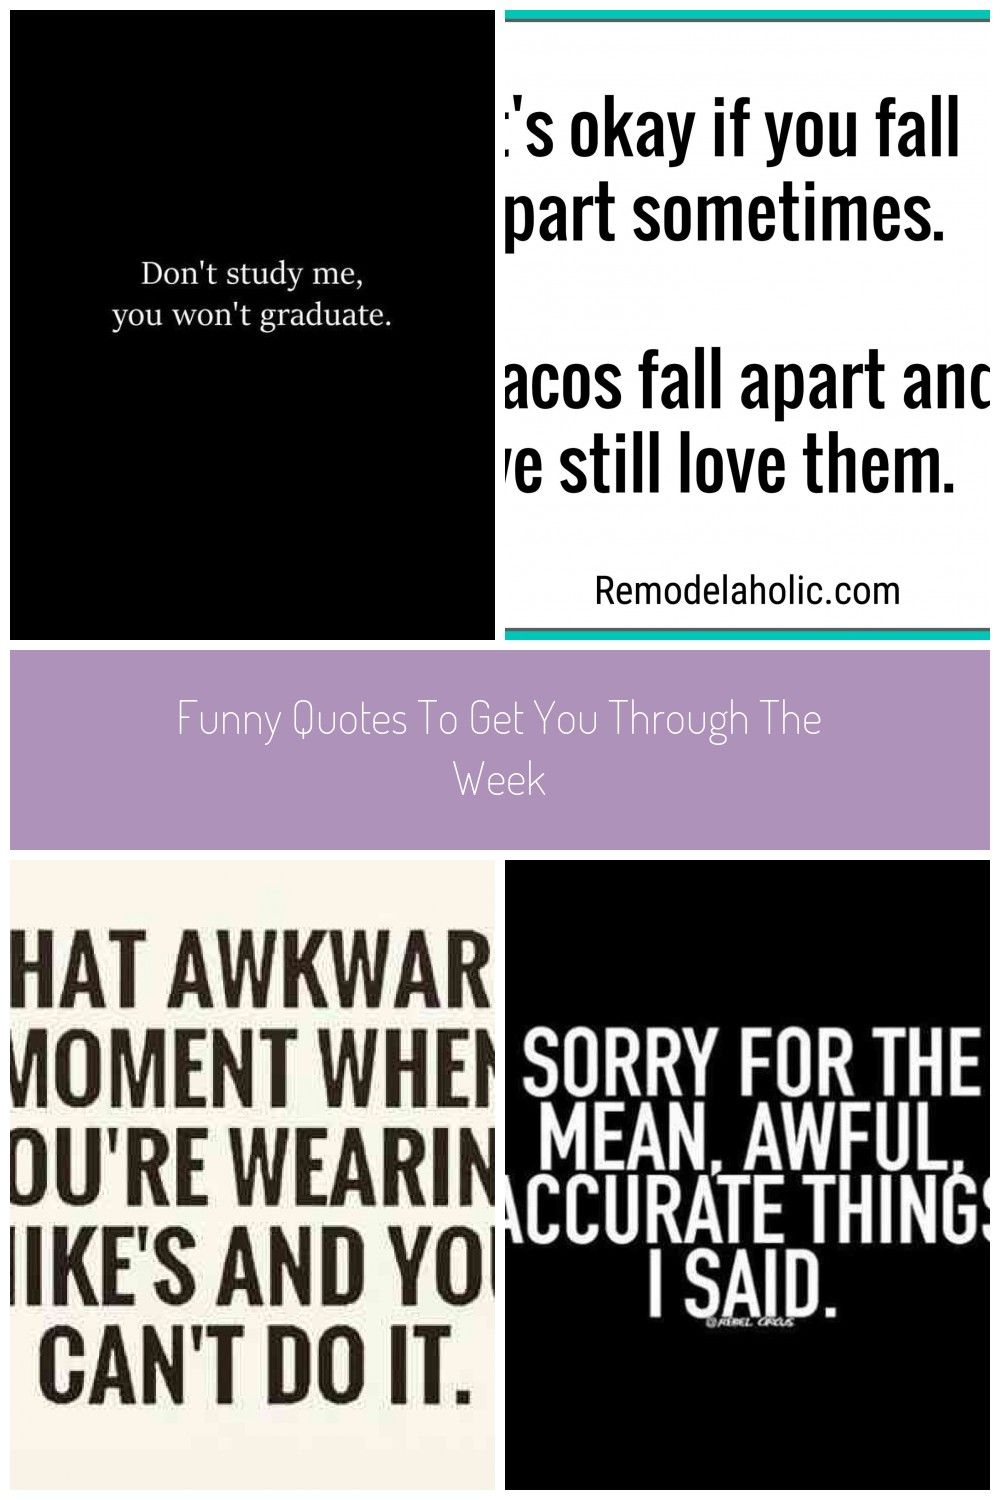 Funny Quotes To Get You Through The Week We All Know Work Weeks Can Be Rough Actually Everyday Seems To Present A In 2020 Funny Quotes Like Quotes Fun Quotes Funny